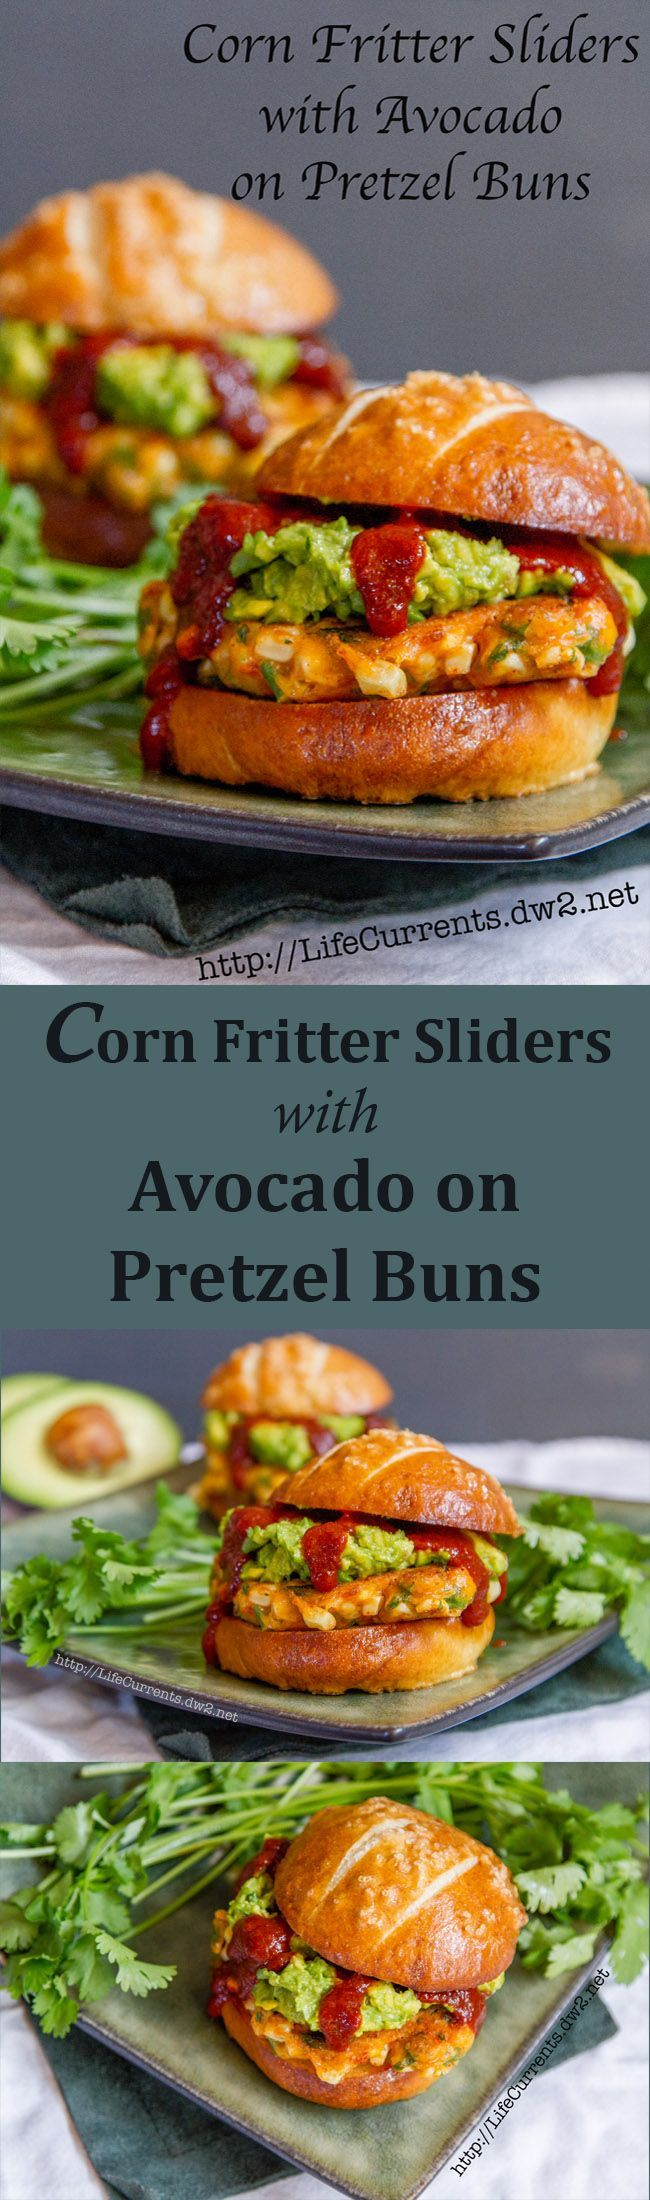 Corn Fritter Sliders with Avocado on Pretzel Buns and served with Easy Enchilada Sauce by Life Currents are a vegetarian great meal. You're going to want this recipe!